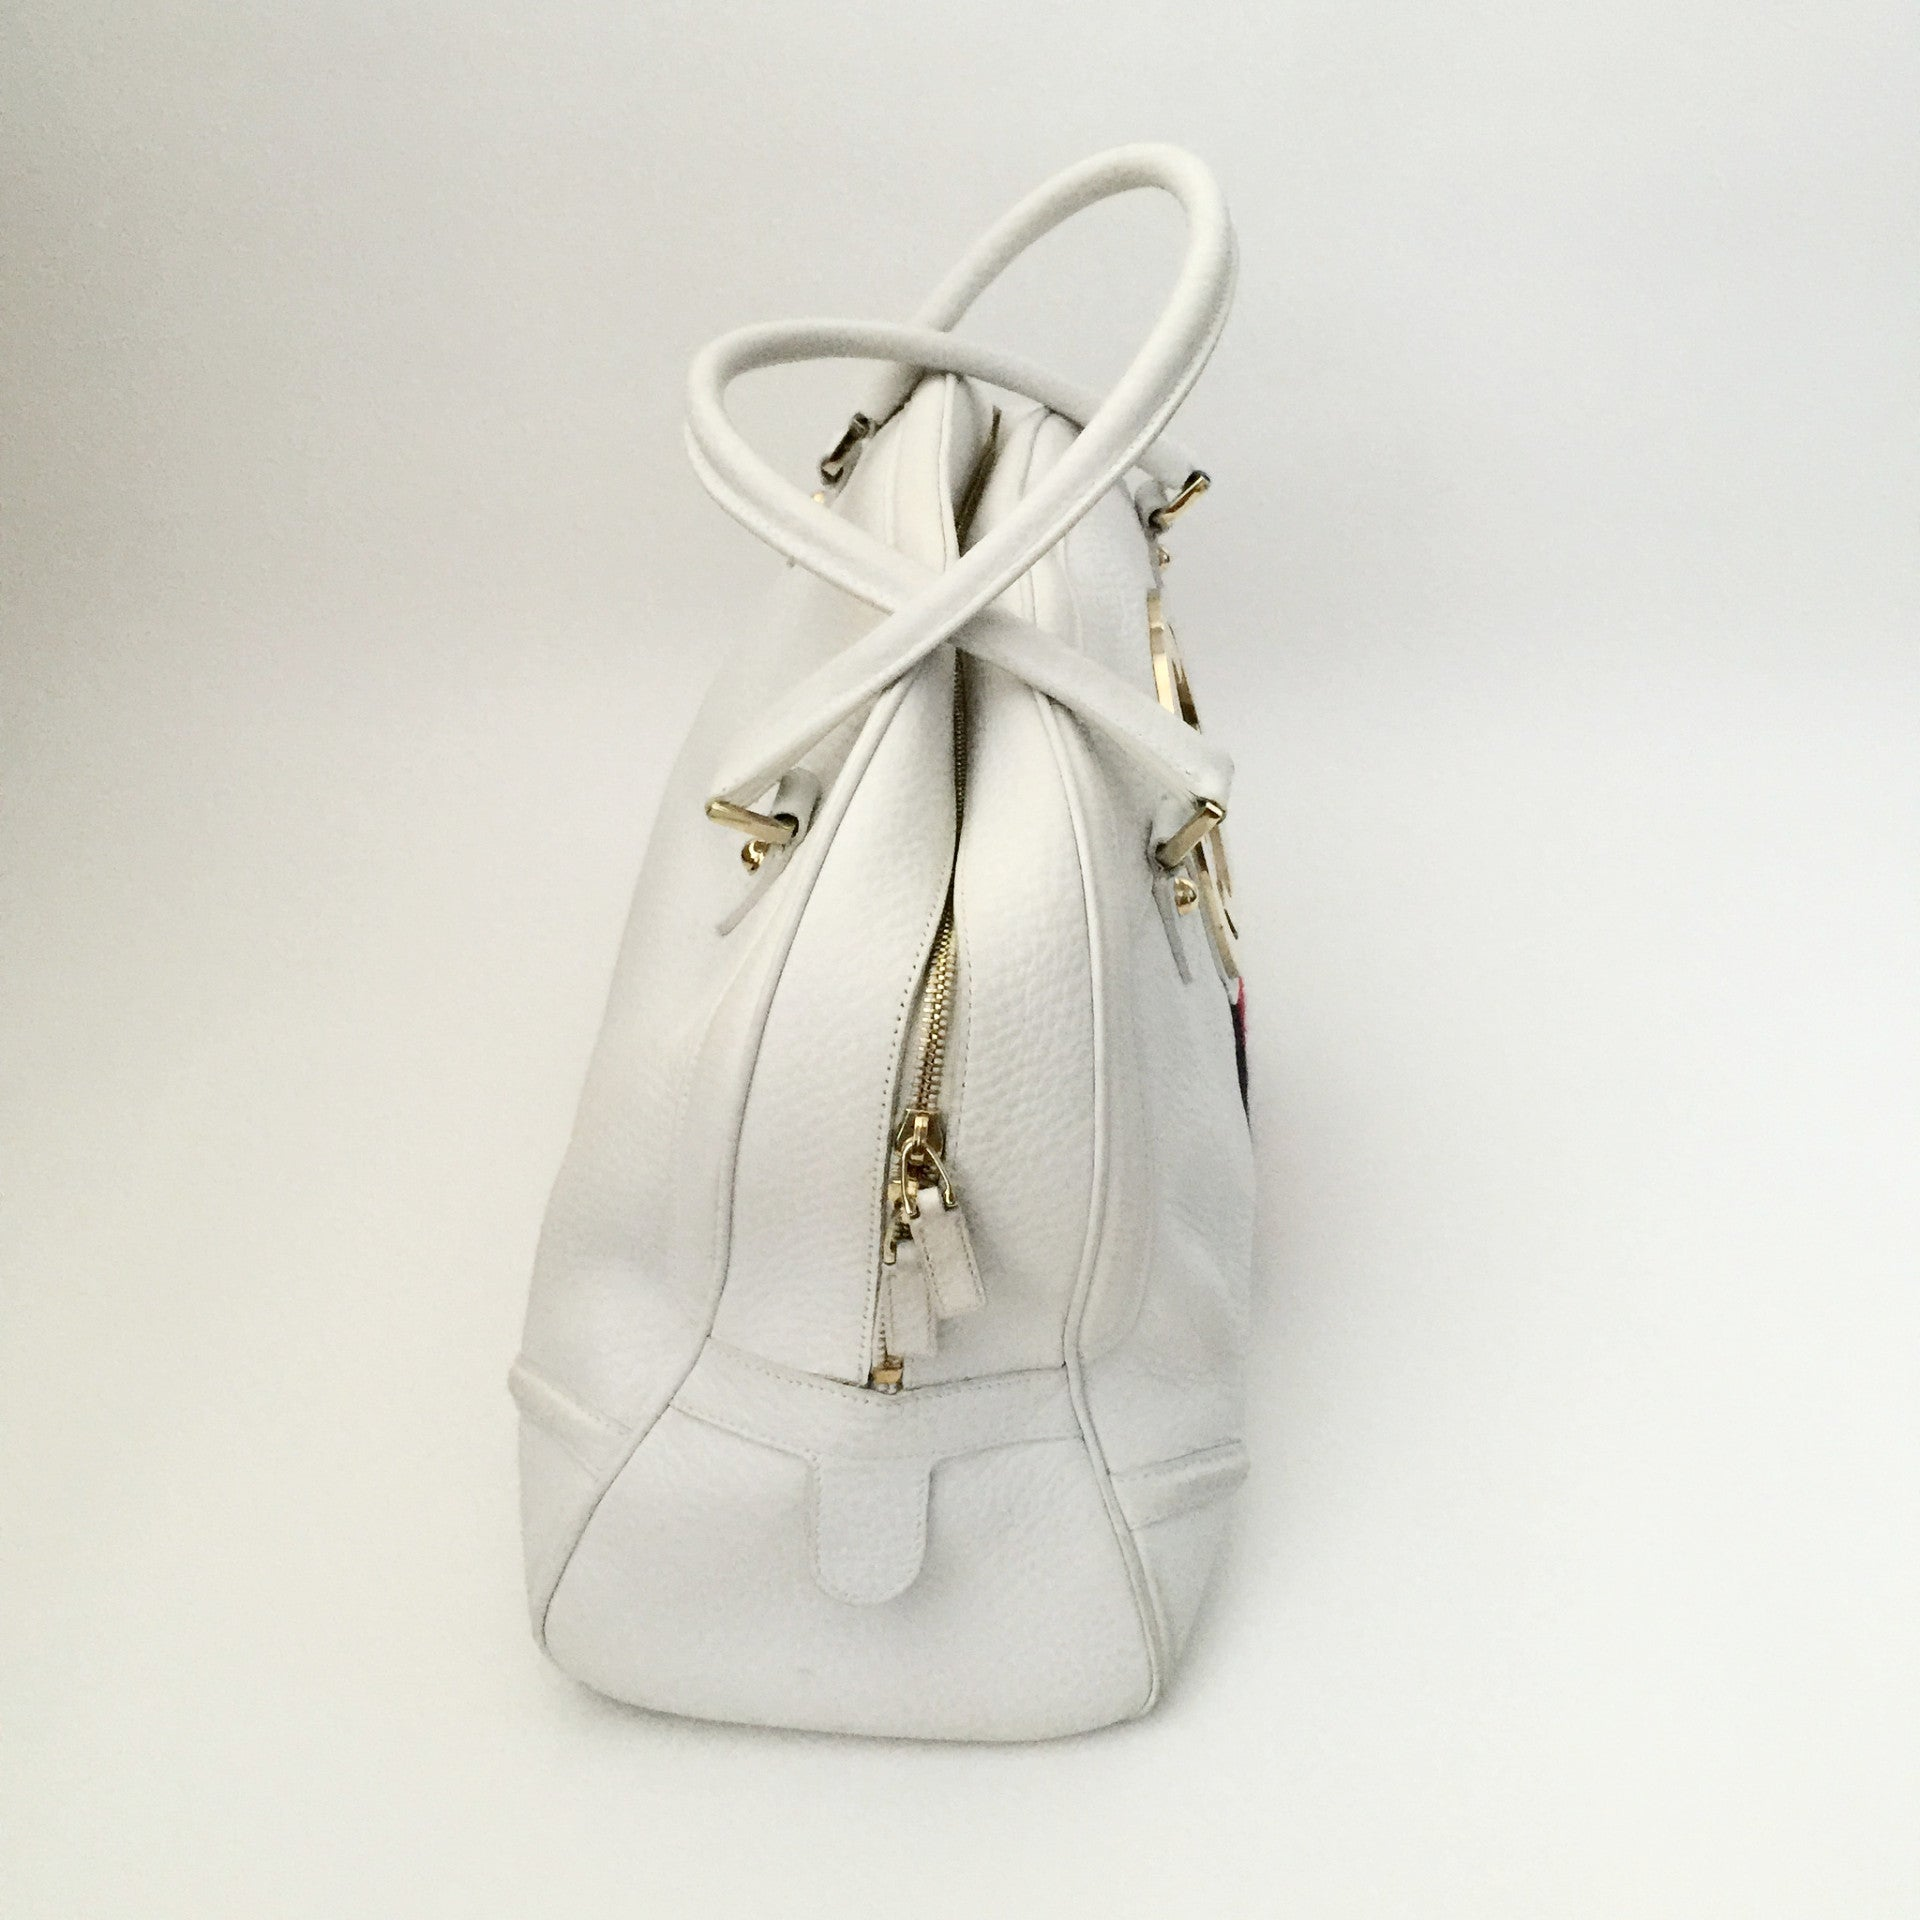 Authentic GUCCI Large White Blondie Bowler Bag